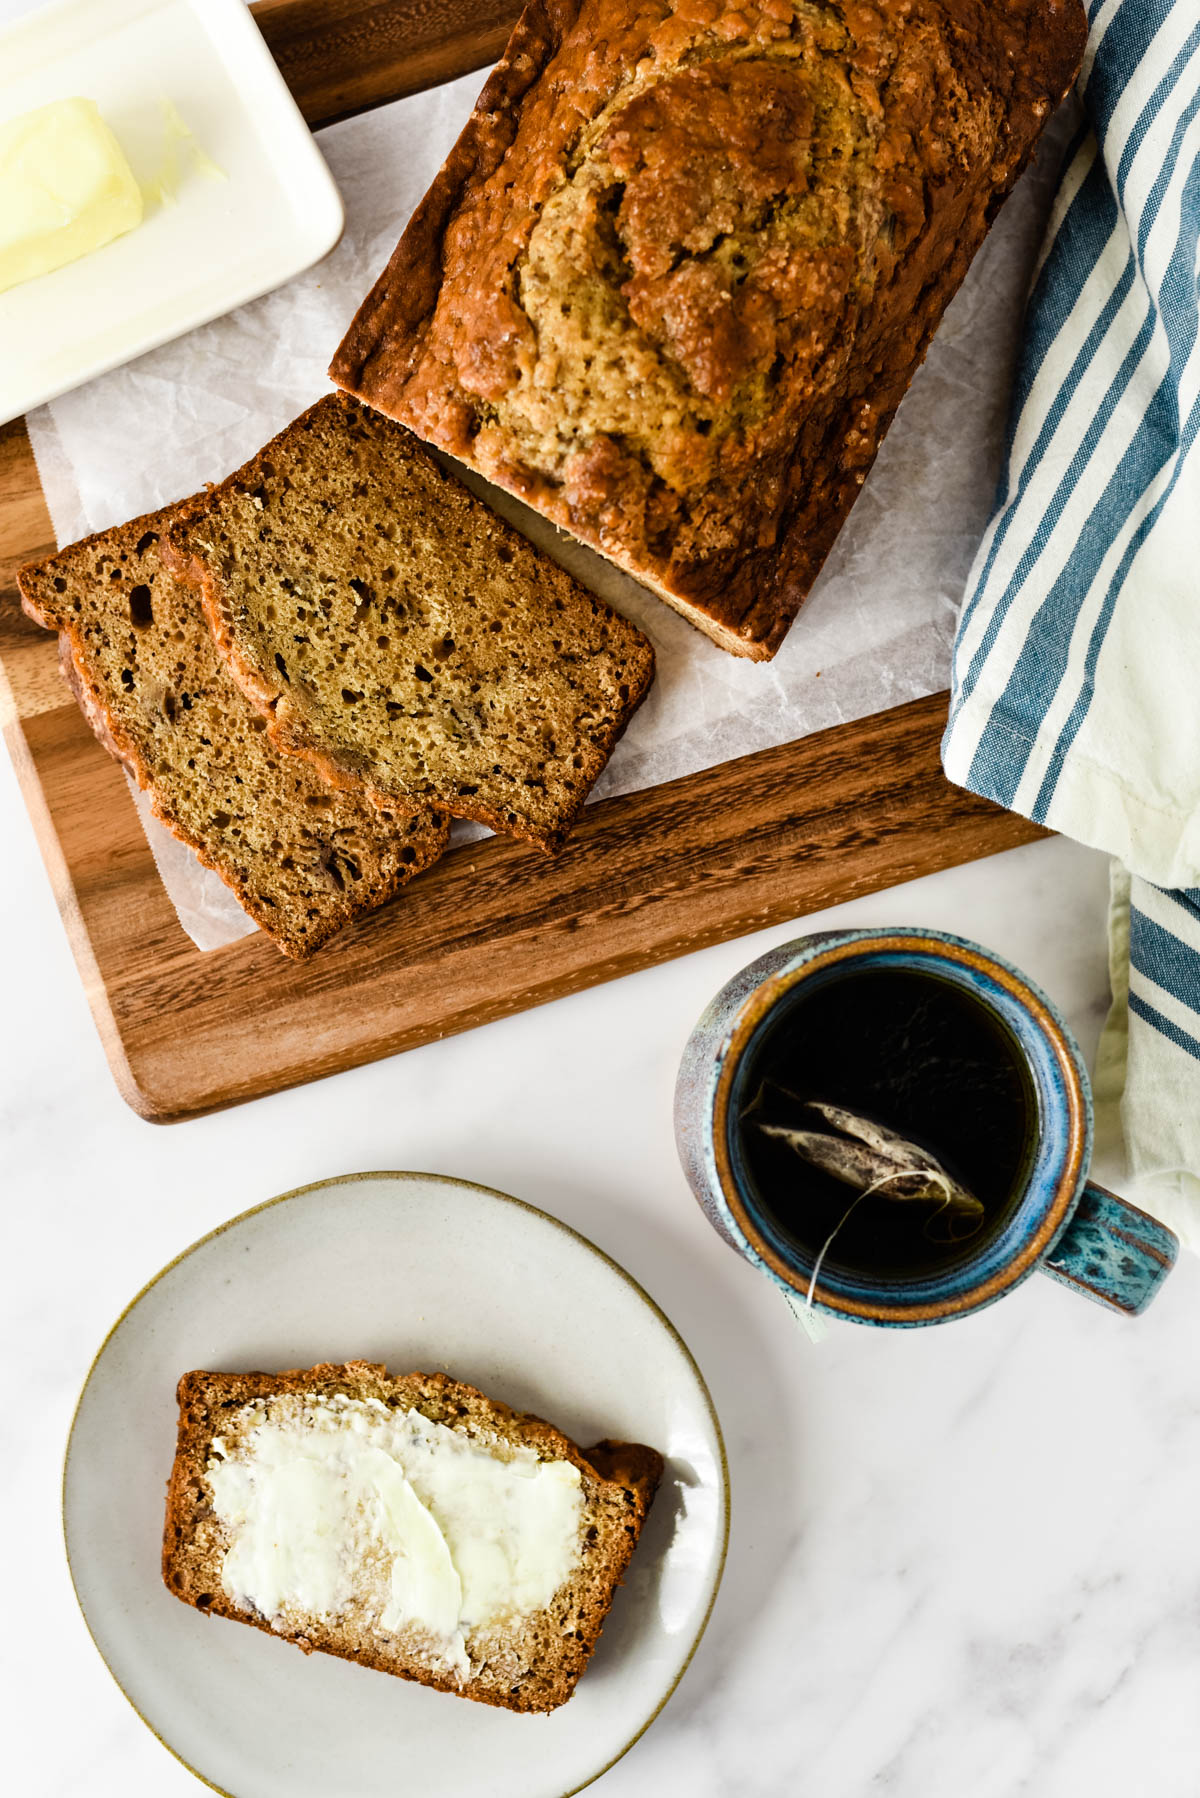 earl grey banana bread overhead on plate with loaf and tea beside